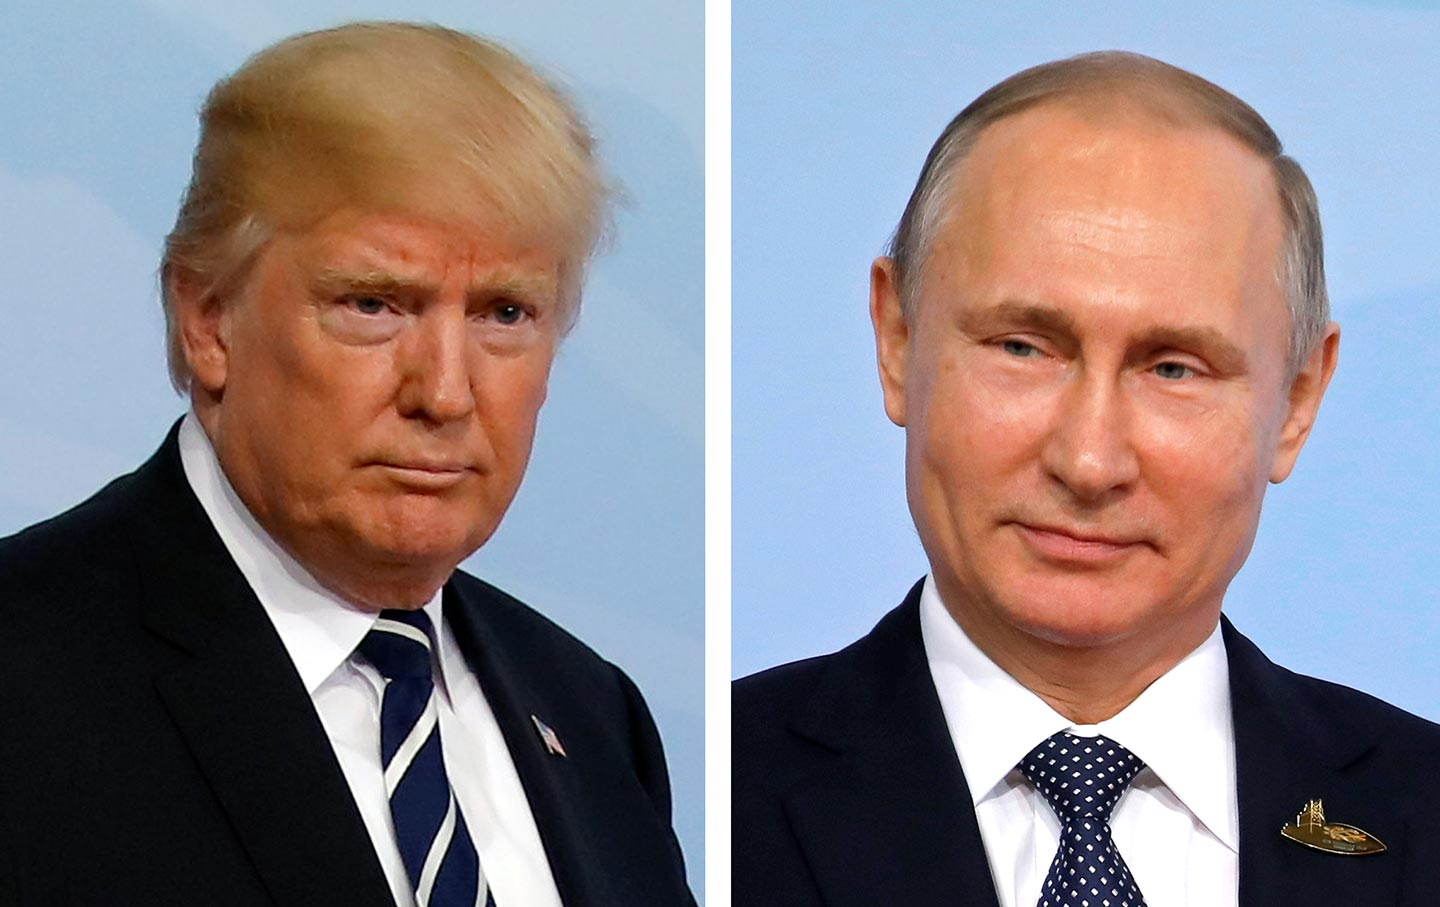 Trump and Putin side-by-side